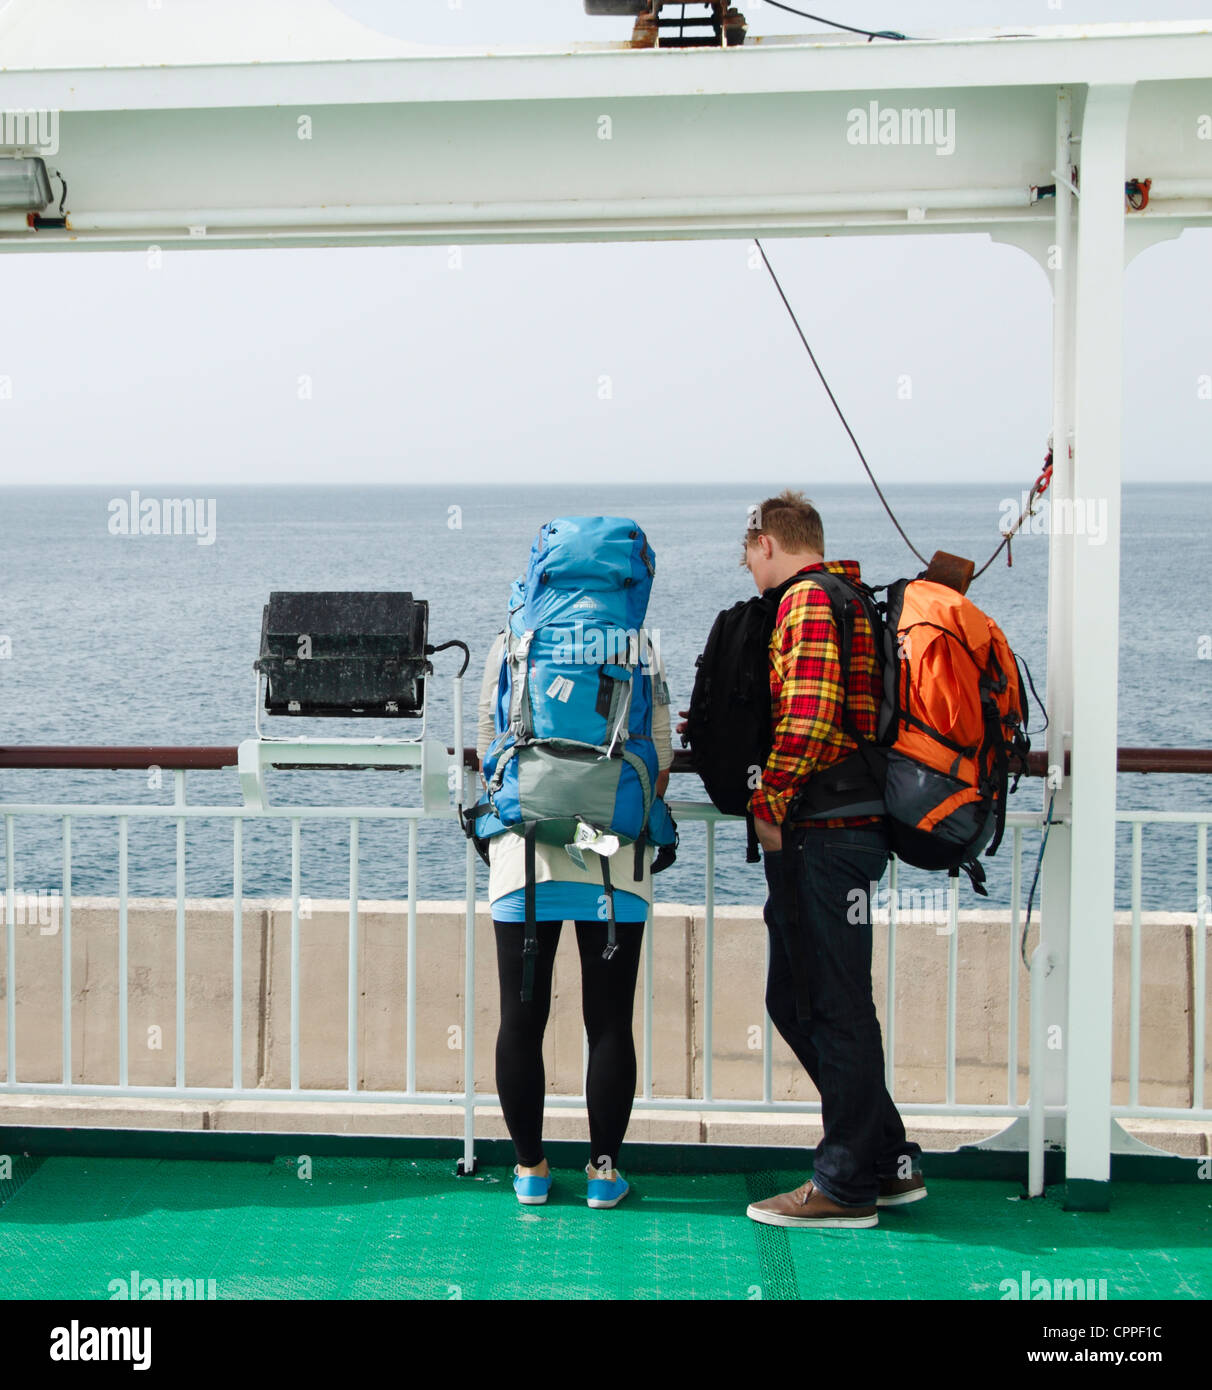 Young backpackers on inter island ferry in the Canary Islands, Spain - Stock Image